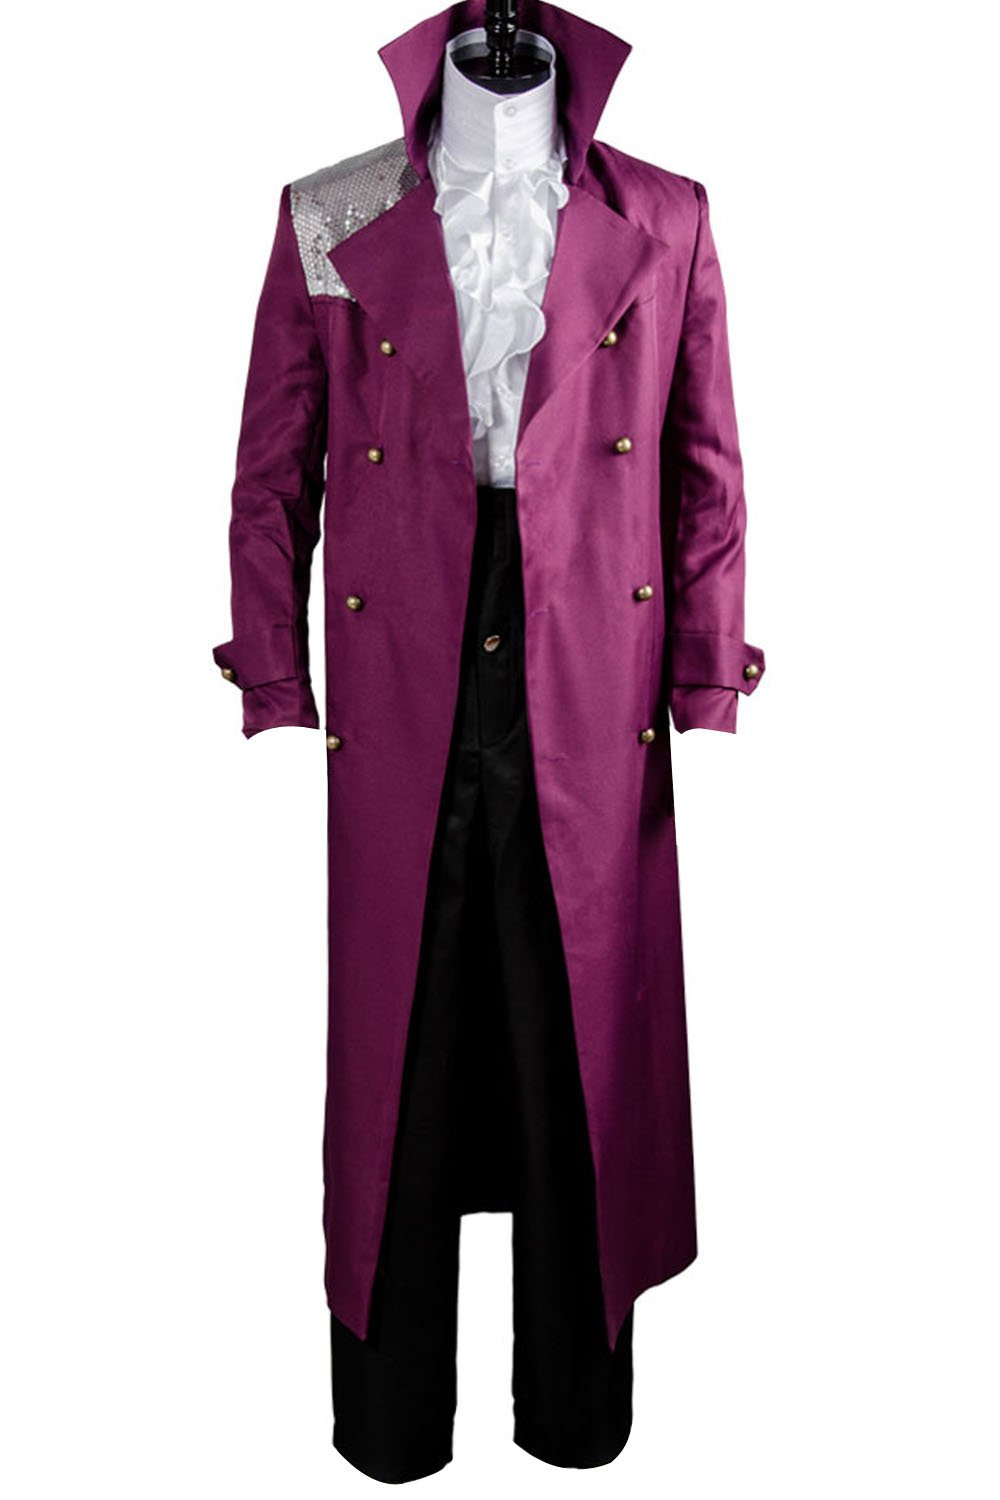 Sidnor Purple Rain Prince Rogers Nelson Costume Shirt Movie Cosplay Outfit Suit by Sidnor